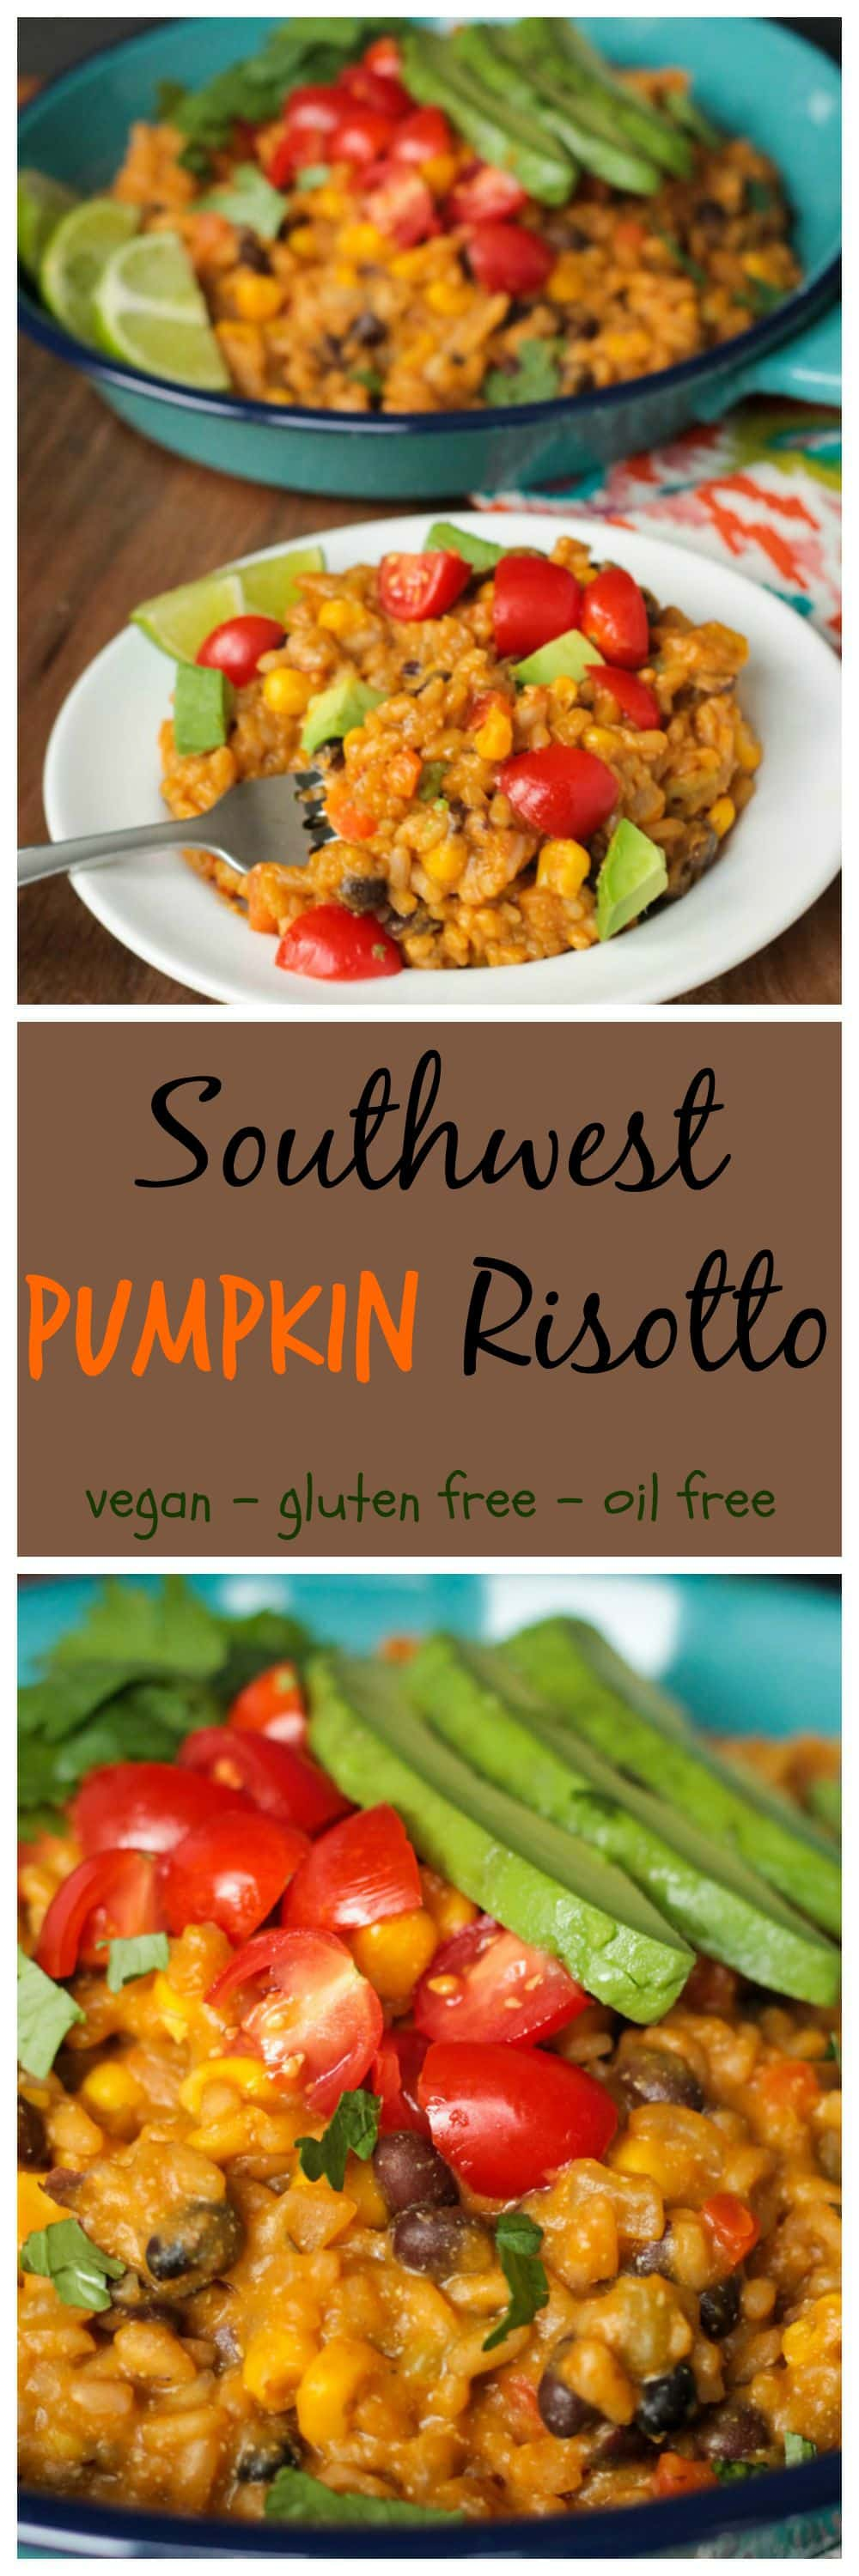 Southwest Pumpkin Risotto - super creamy, yet completely dairy free, this Tex Mex spin on risotto is sure to be a family favorite. Vegan & Gluten free.